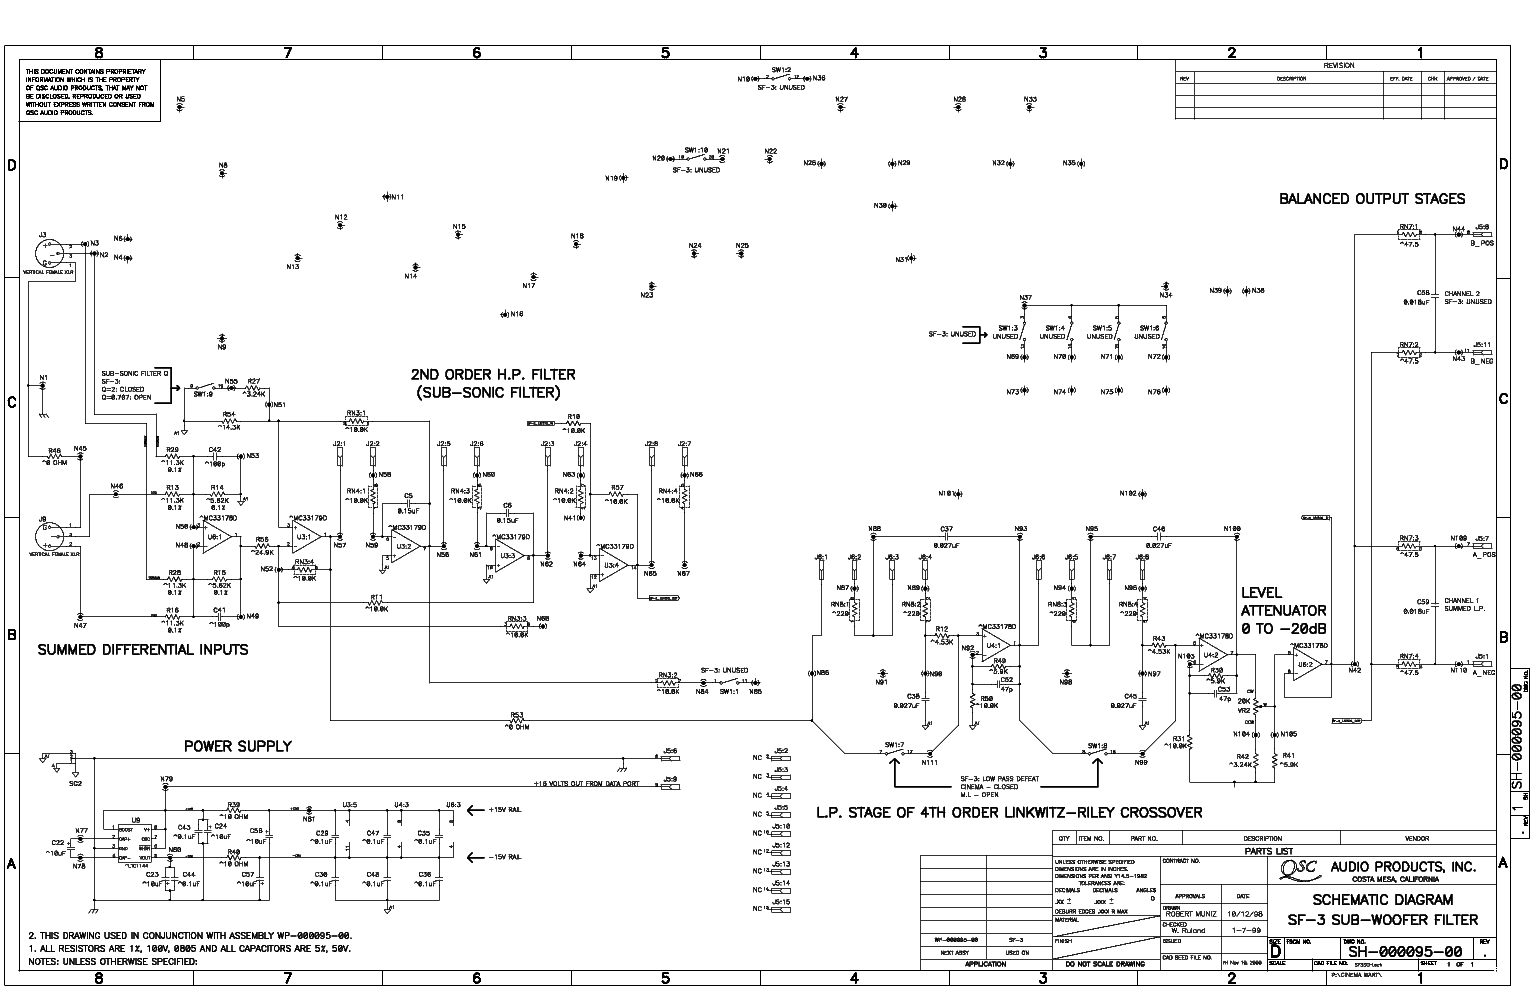 qsc_sf-3_sch.pdf_1 Qsc Plx Schematic Diagram on isa 300ti, pl340 power supply, gx 3 amplifier, k-12 ksub, 1400 power amp, k10 speaker, usa 900 amplifier,